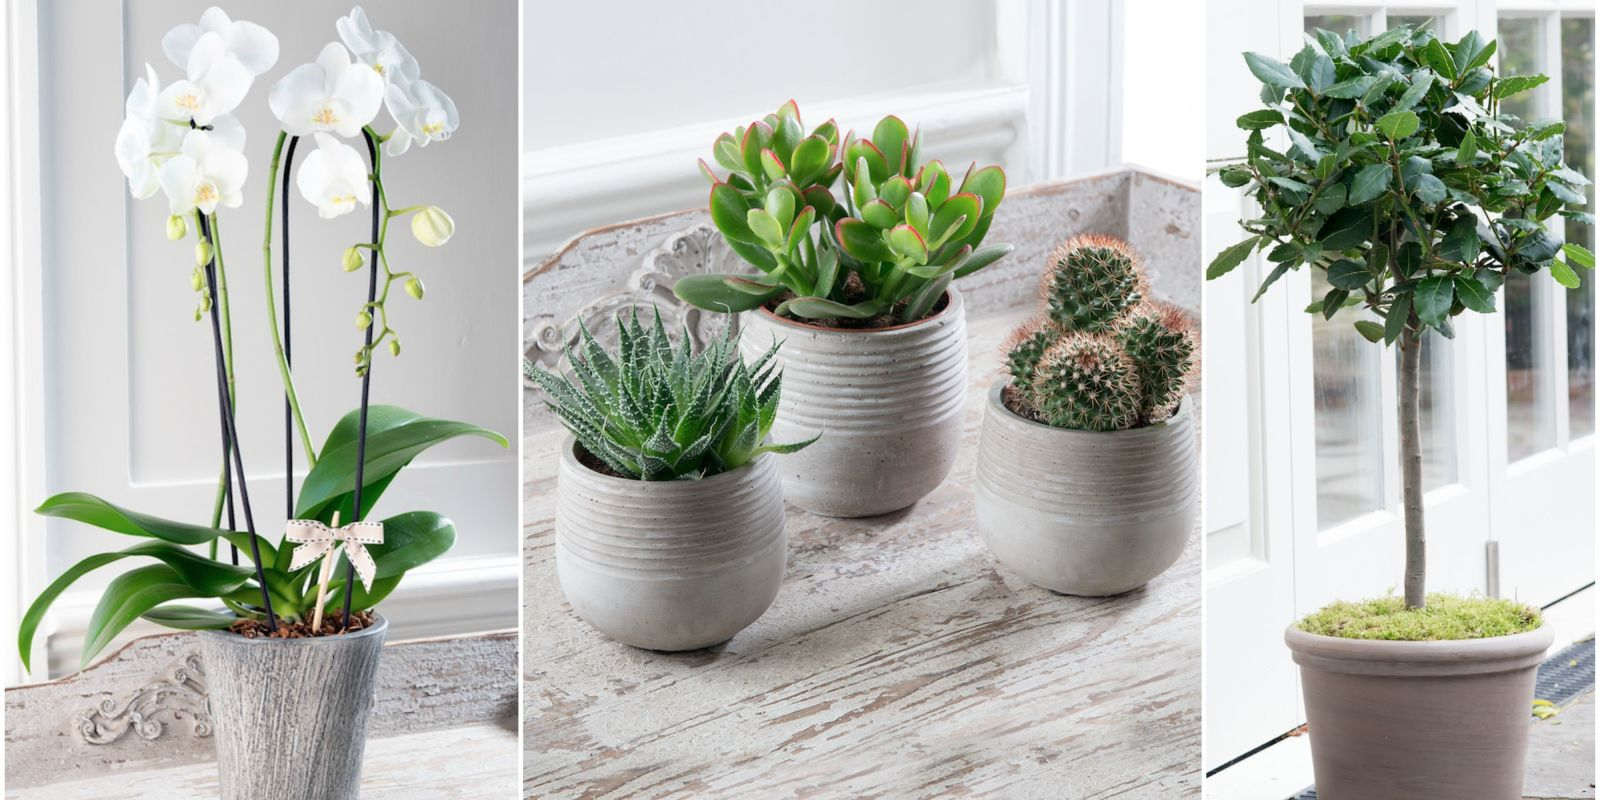 Small Household Plants Stylish Potted Plants From The House Beautiful Collection